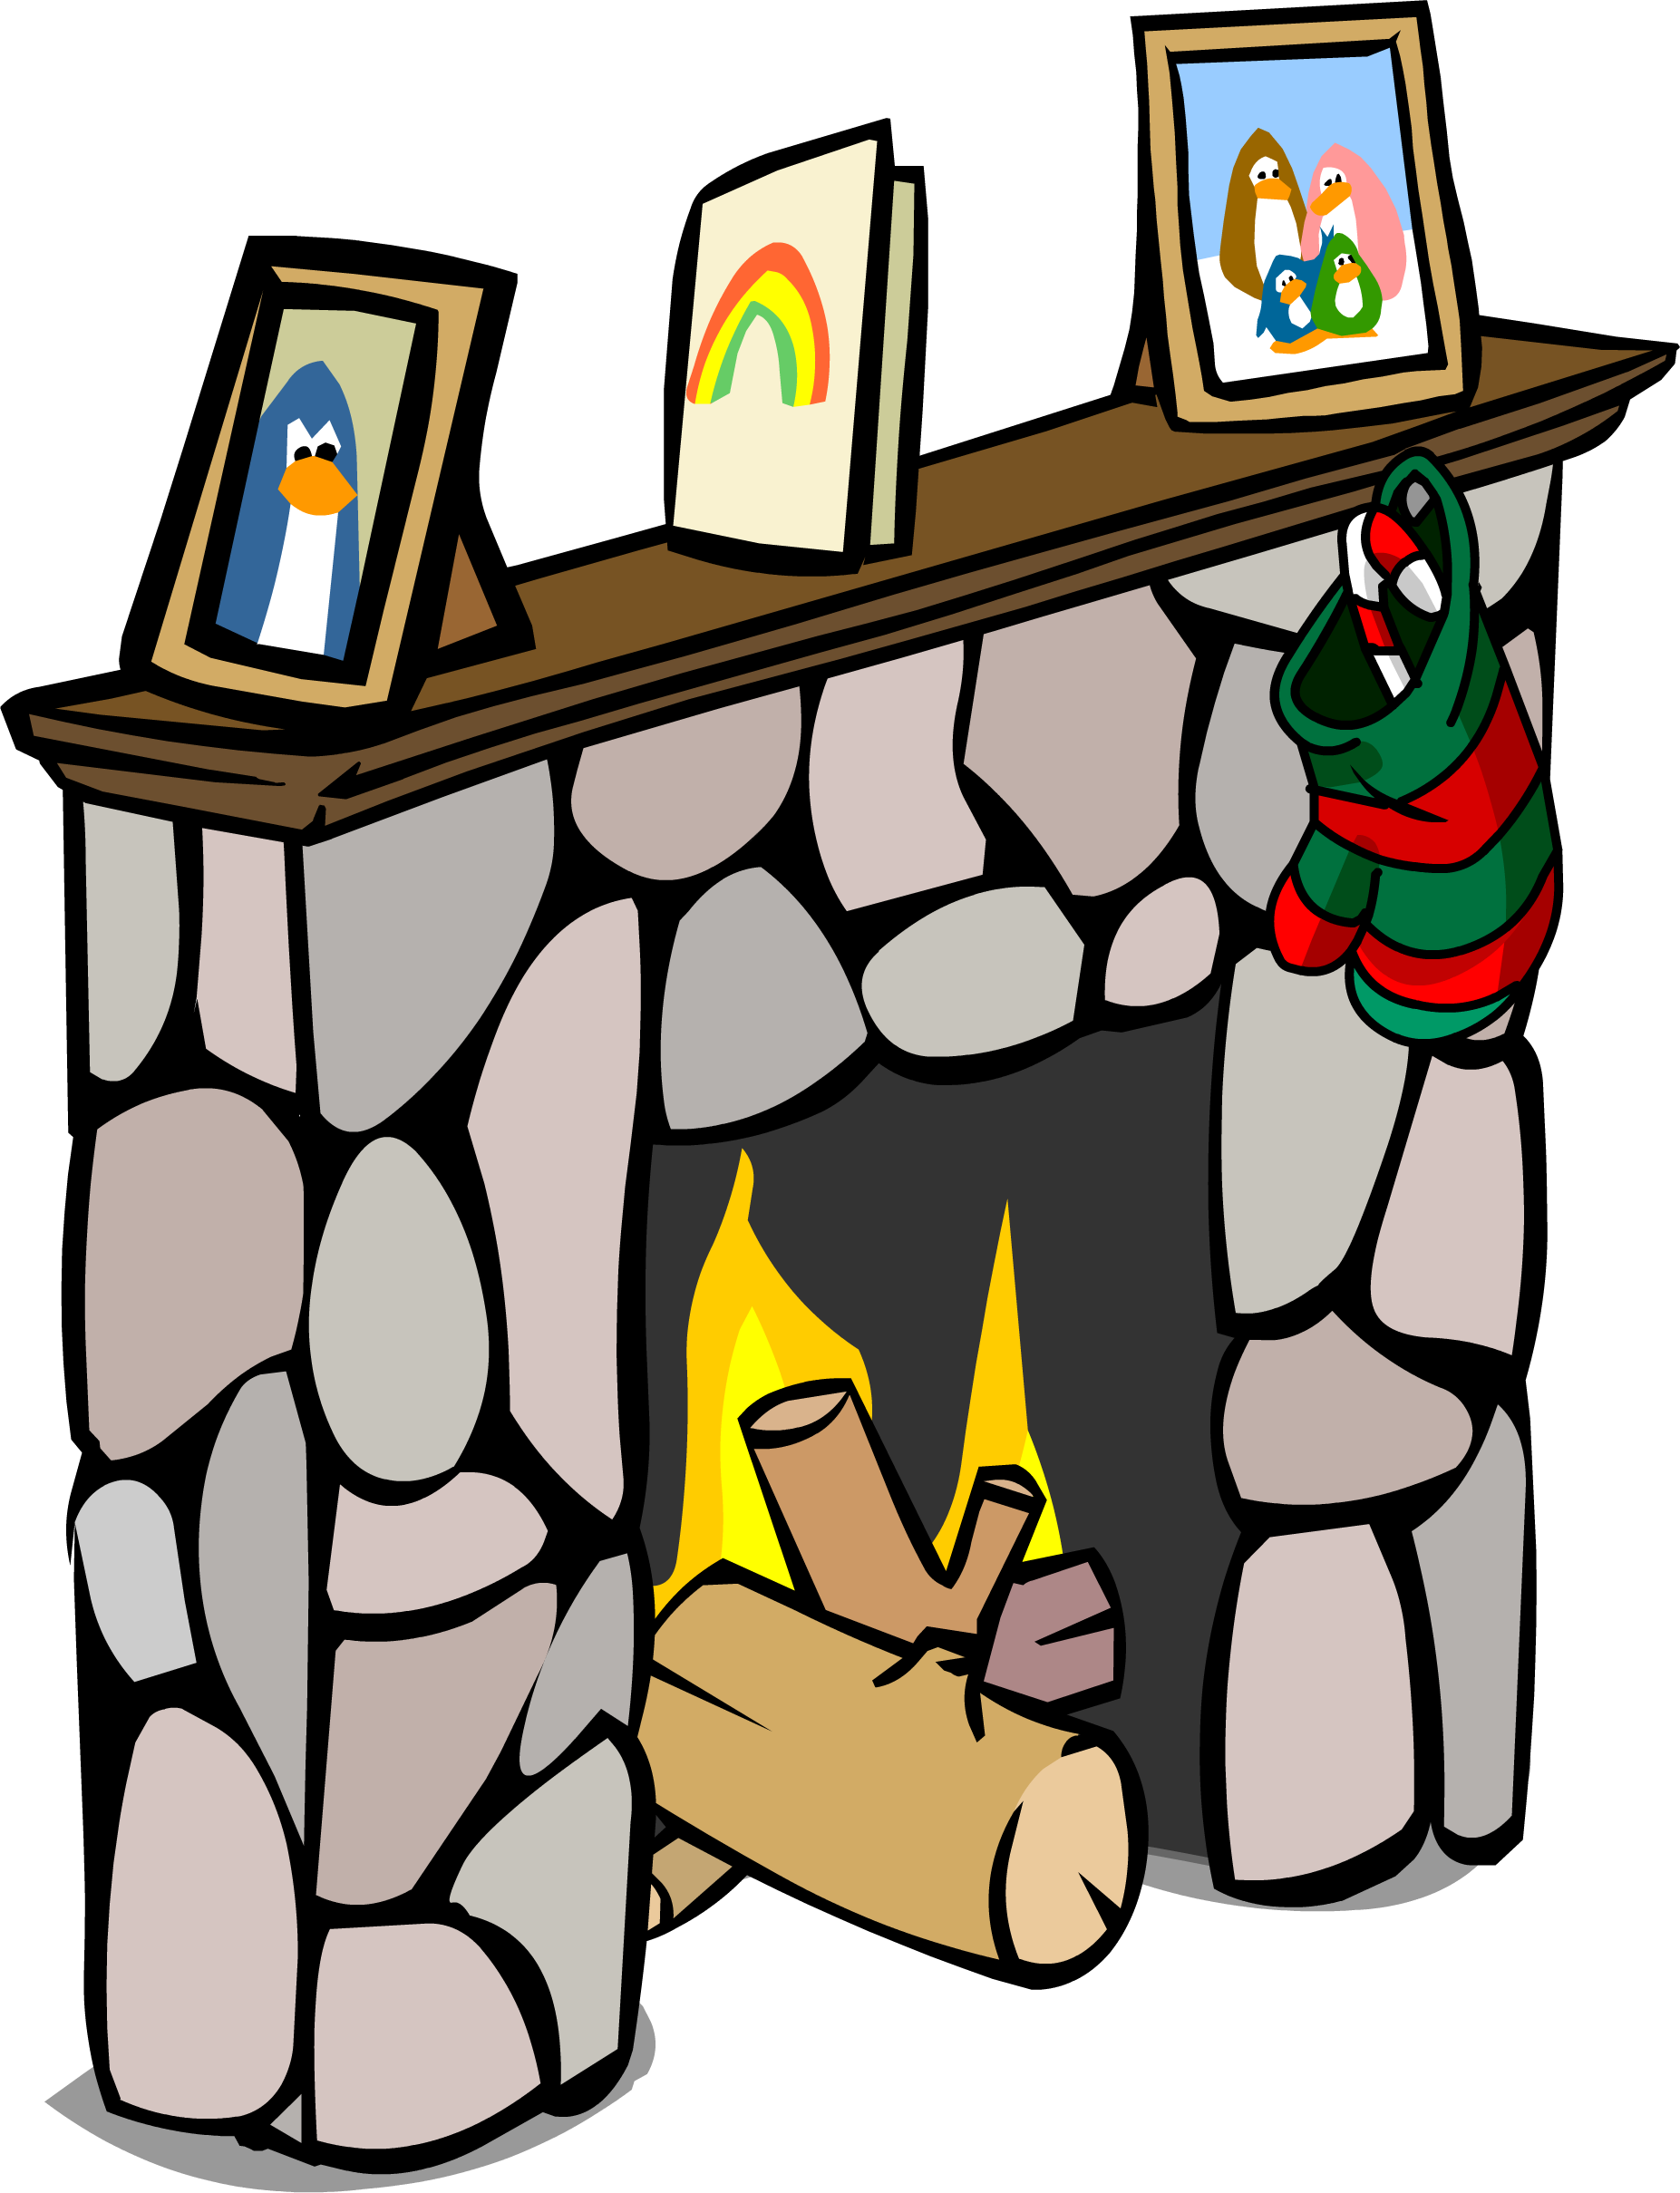 image fireplace sprite 003 png club penguin wiki fandom